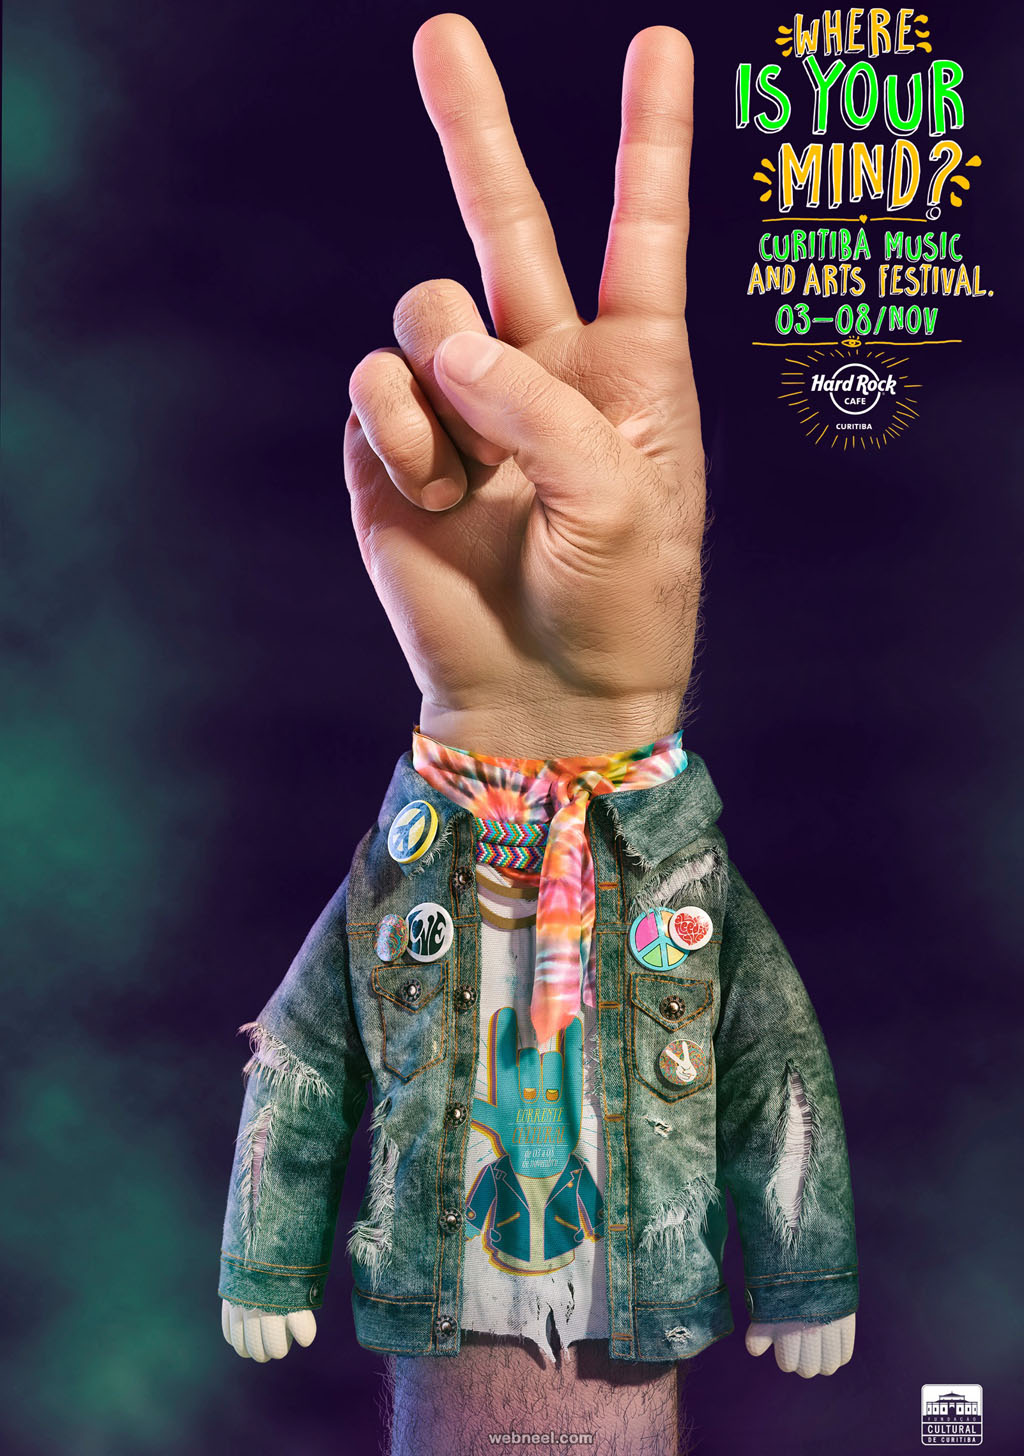 curitiba music arts festival print advertisement by felippe motta